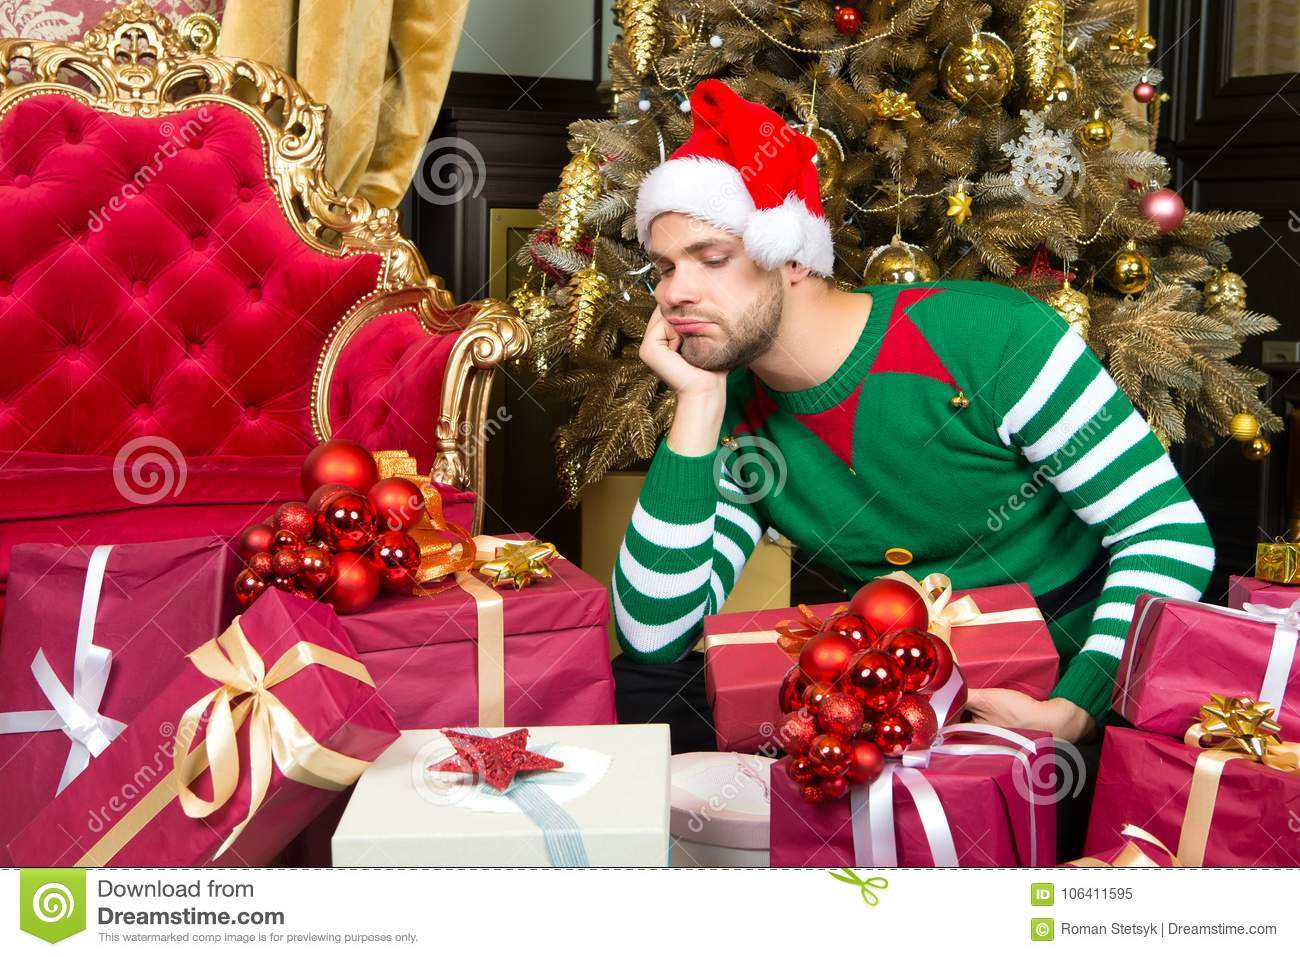 21bffa0c38e72 Guy Look At Present Boxes With Thinking Face Stock Image - Image of ...